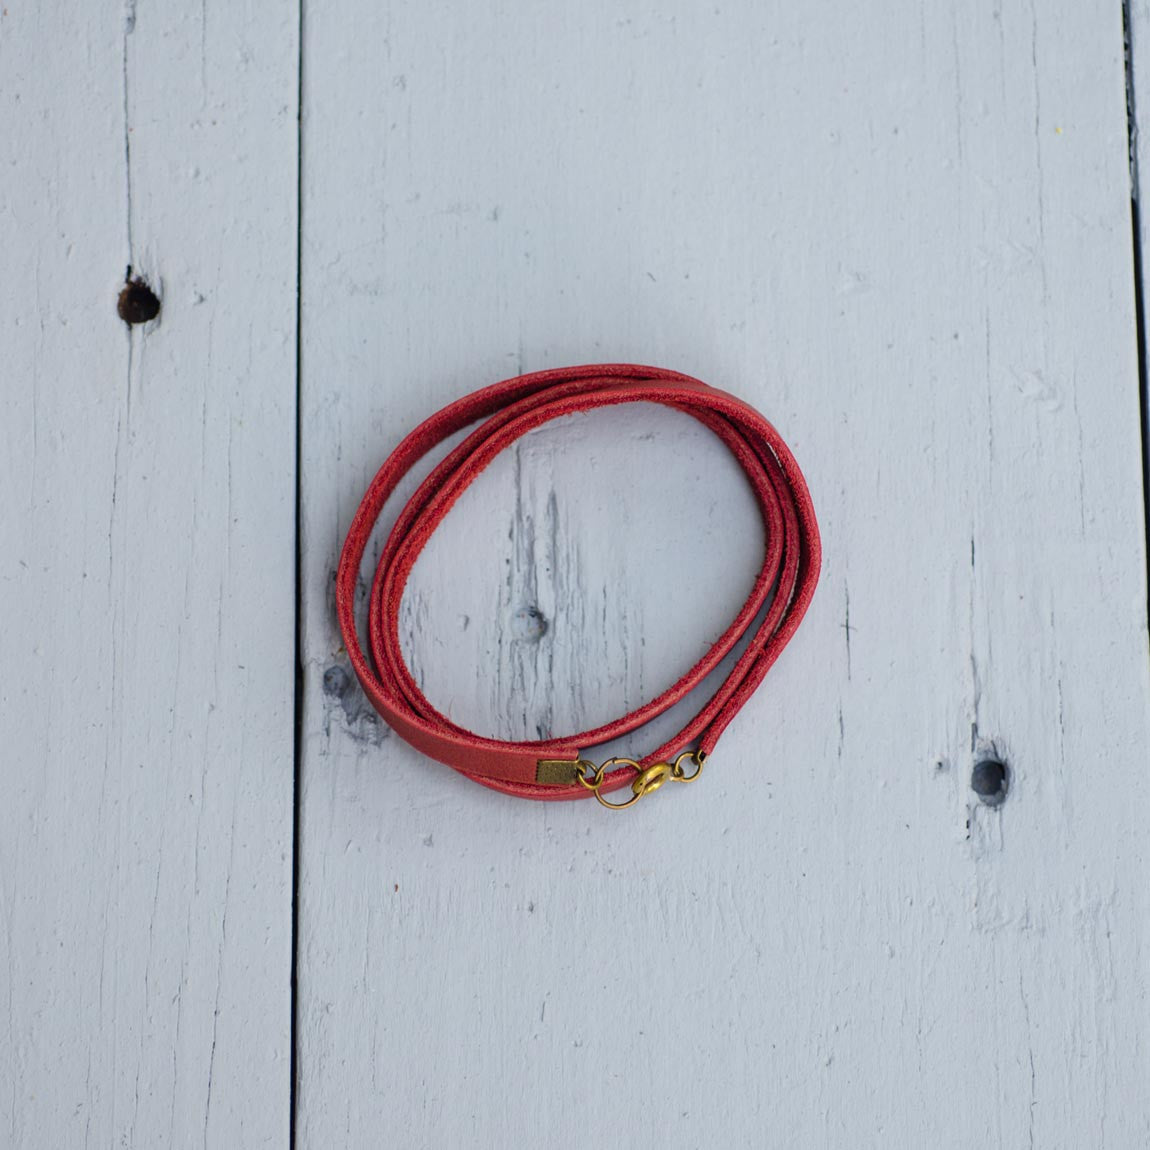 red-leather-wrist-band-closed-top-view_2048x Ranger Harness Wire Wrap on snap choke free, downhole tool, around strap dog, snap monogram, electrical wire, engine wiring, snap plaid dog, around dachshund dog,